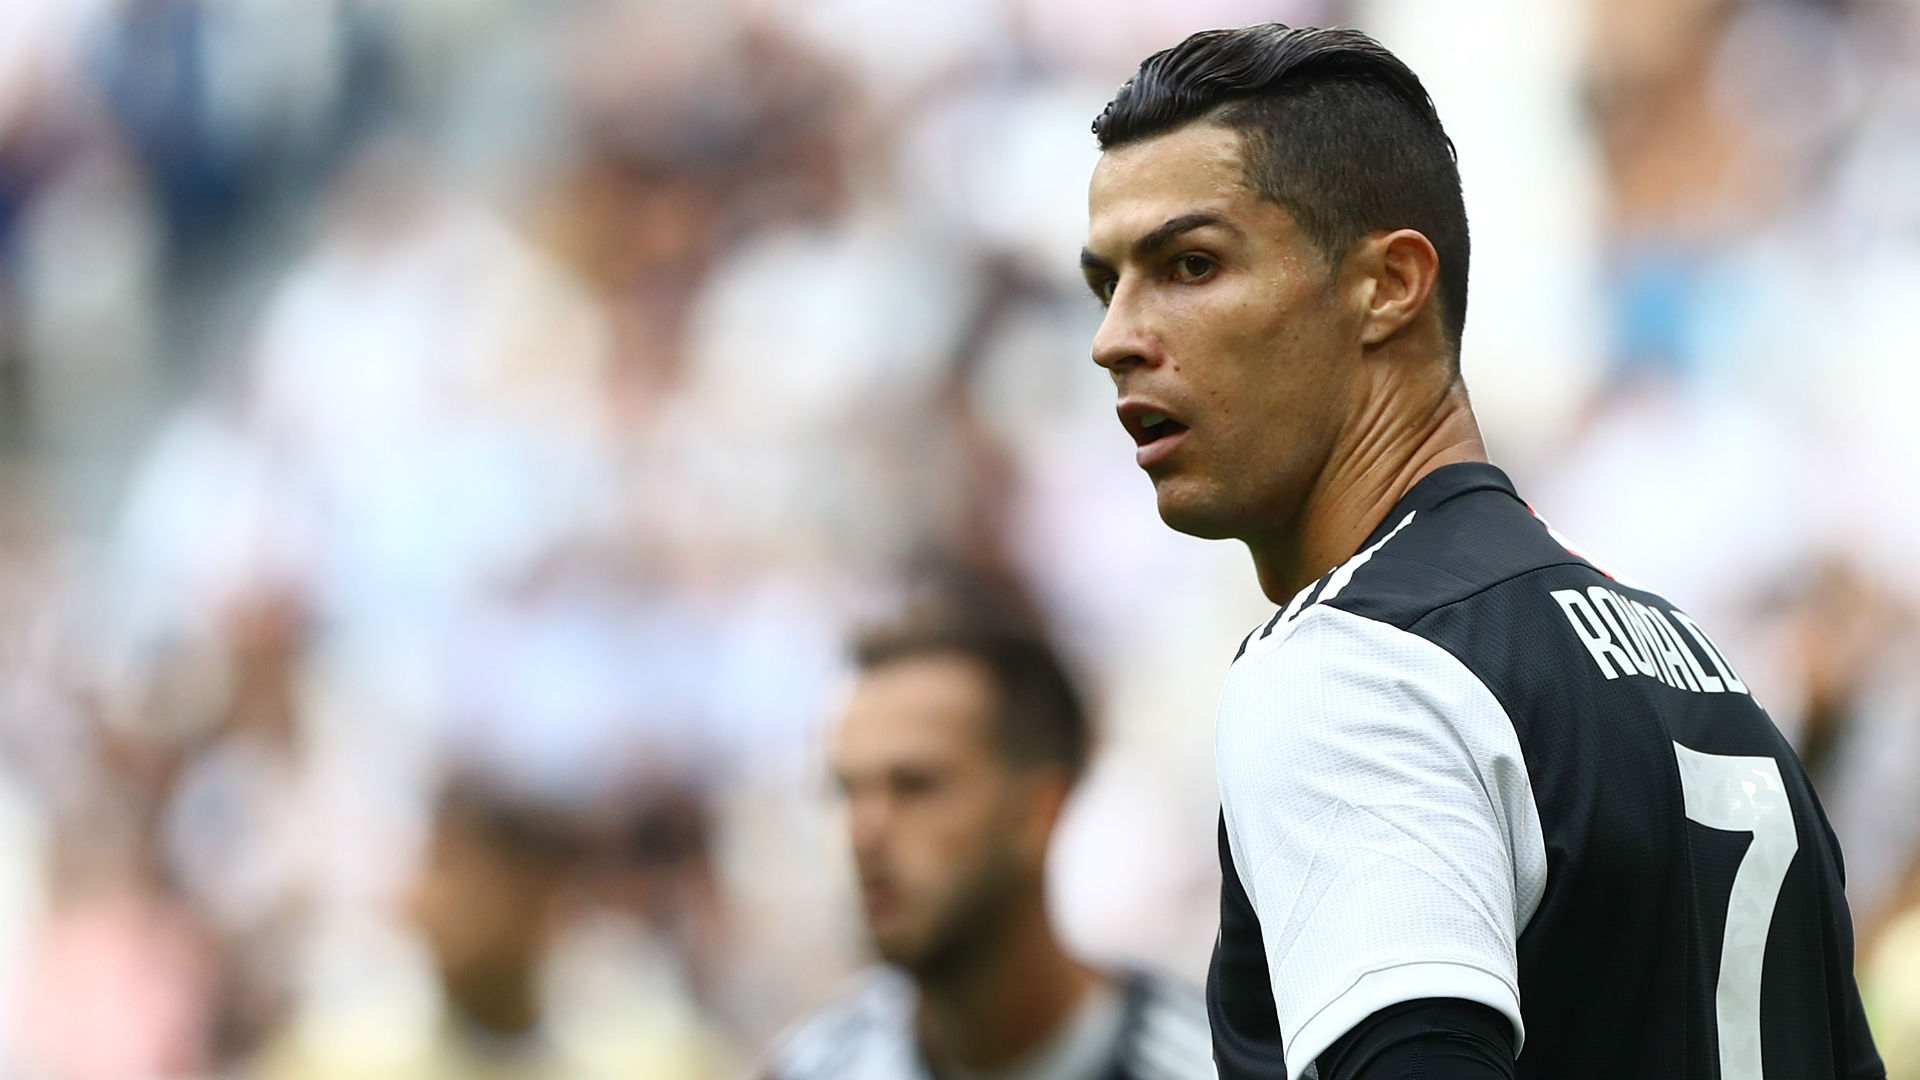 Juventus star Cristiano Ronaldo opens door to early retirement